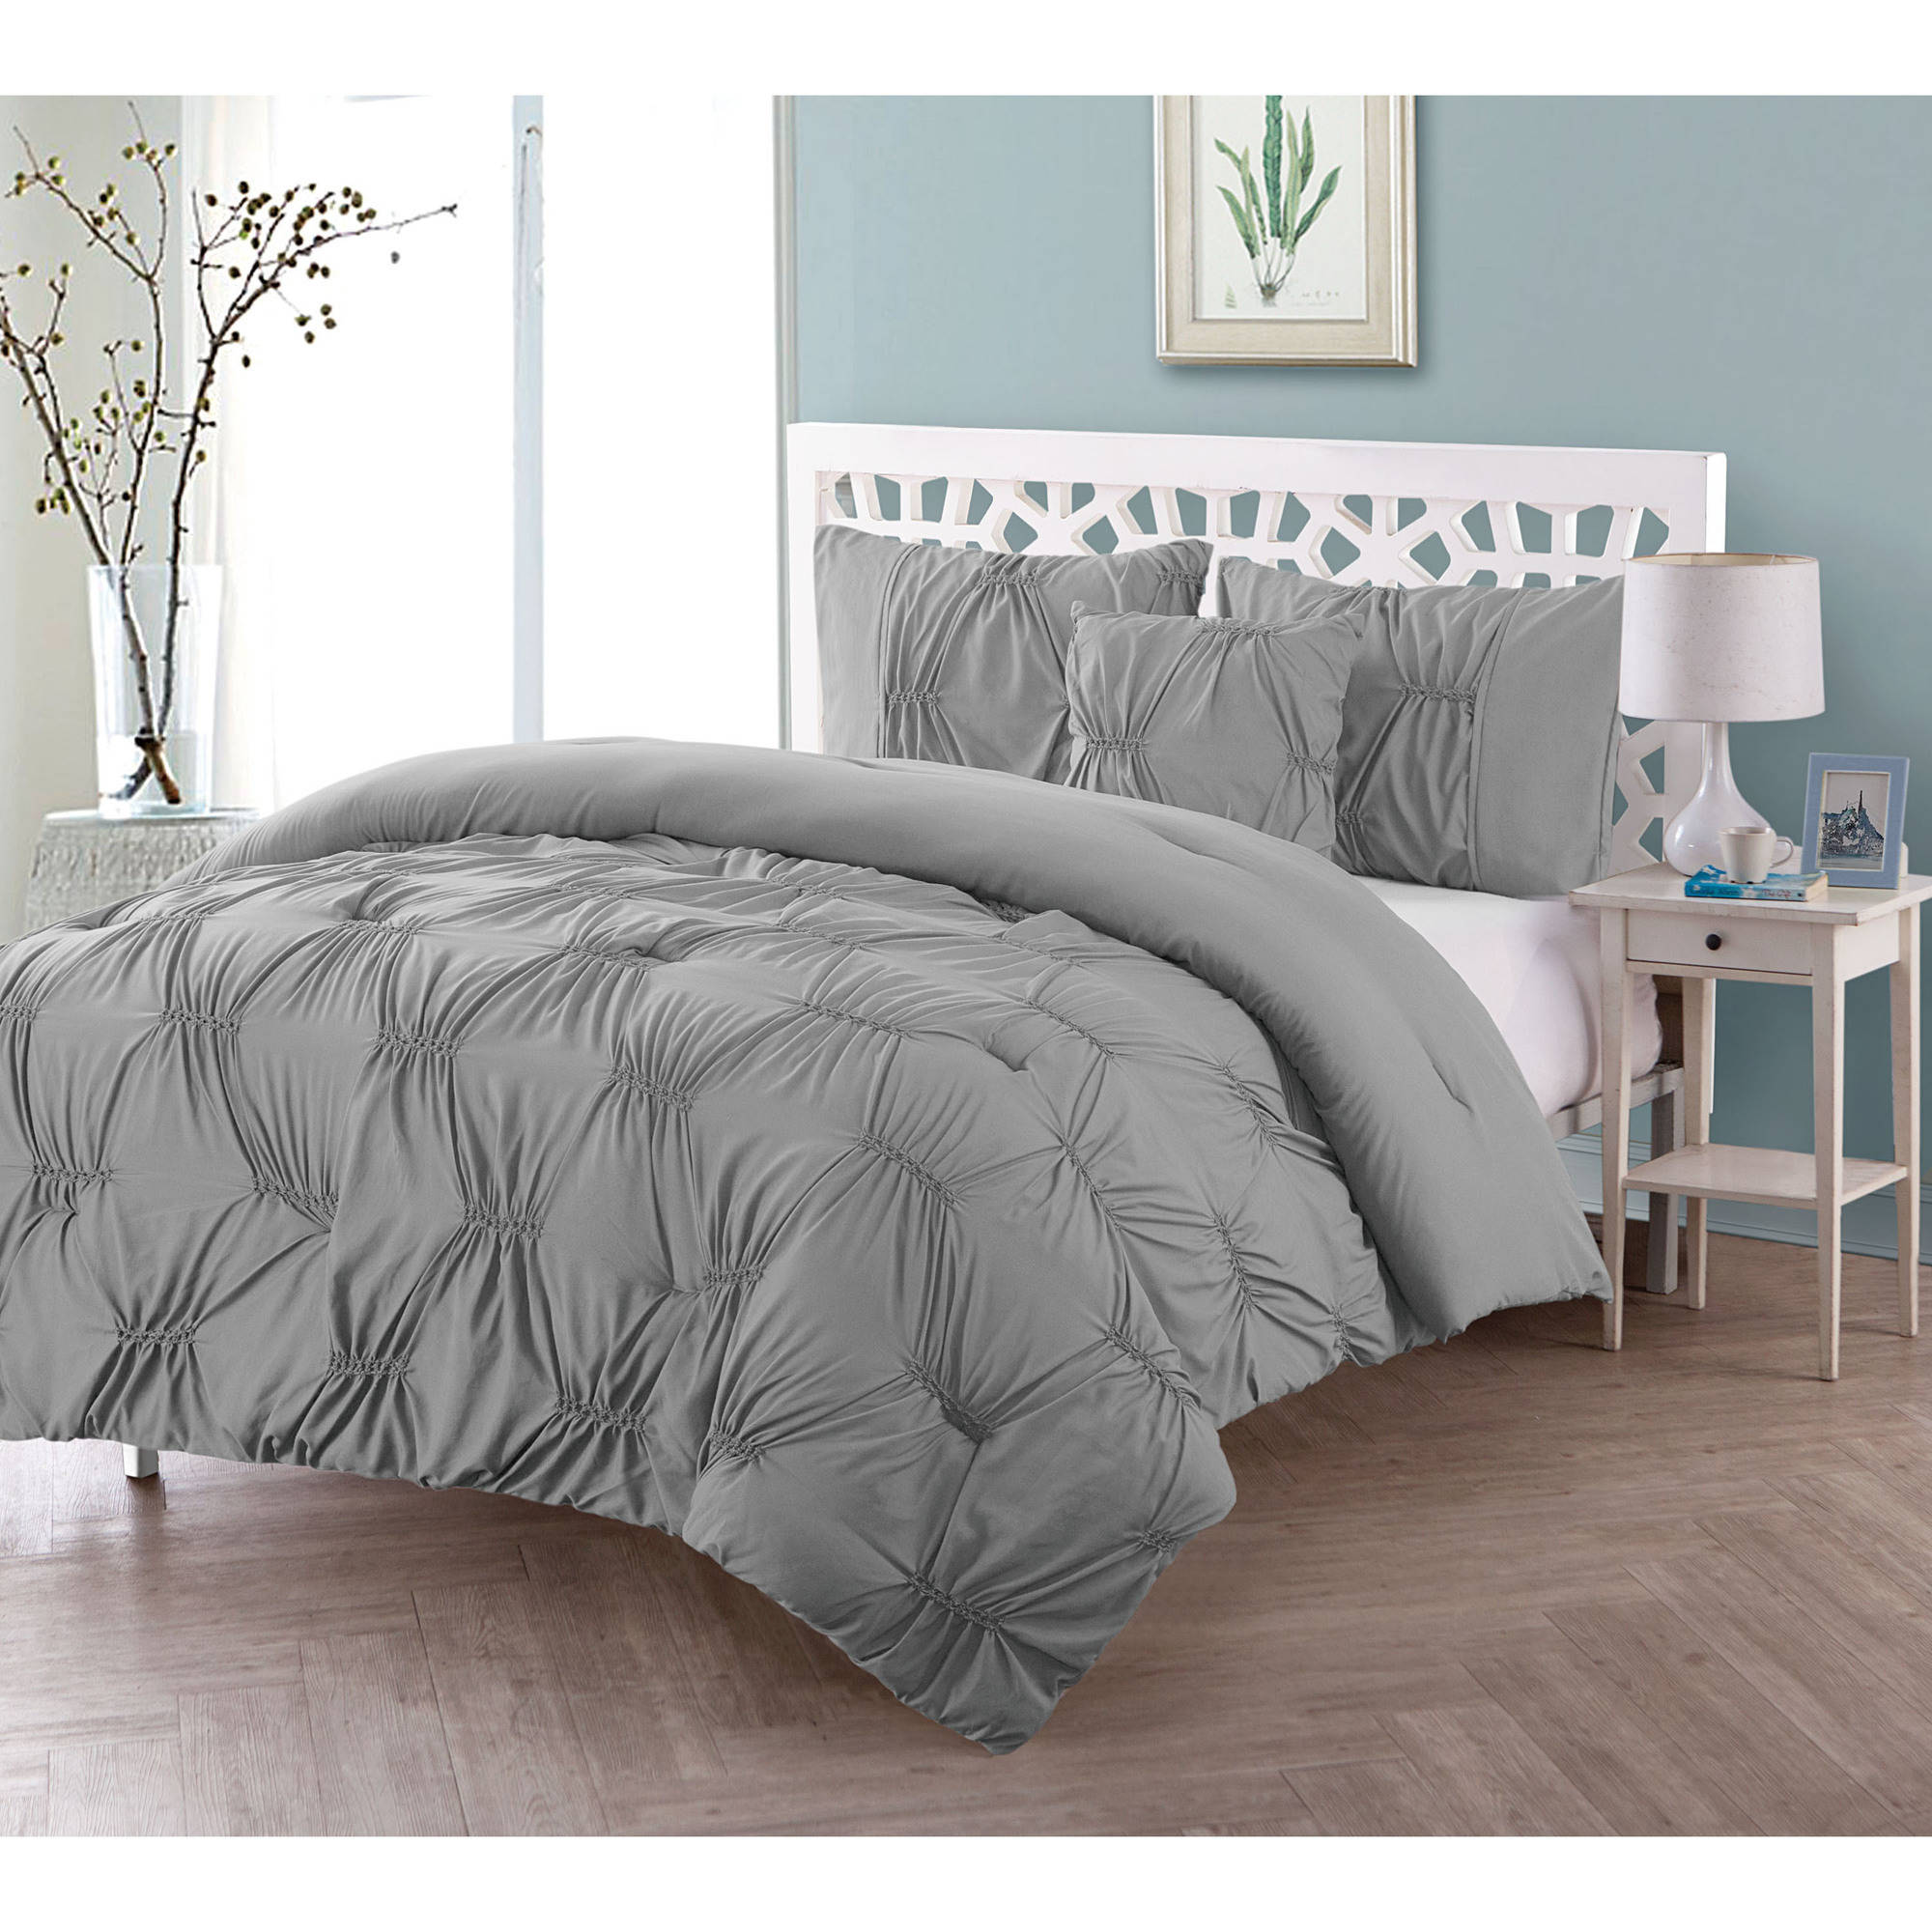 VCNY Monica Solid Textured Comforter Set, Multiple Colors Available